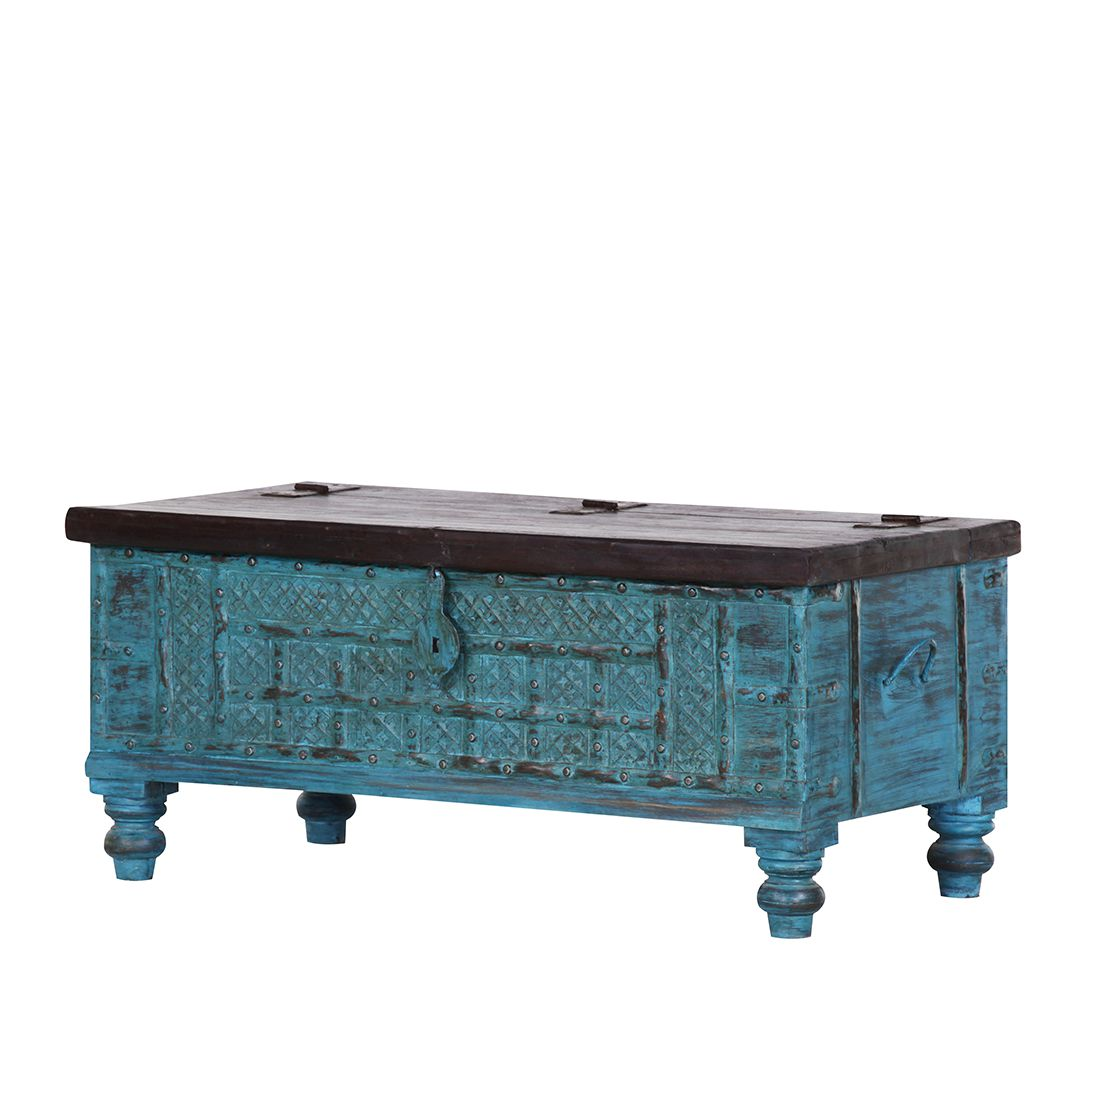 truhe watergate mango massiv recycled altholz t rkis blau red living online kaufen bei woonio. Black Bedroom Furniture Sets. Home Design Ideas